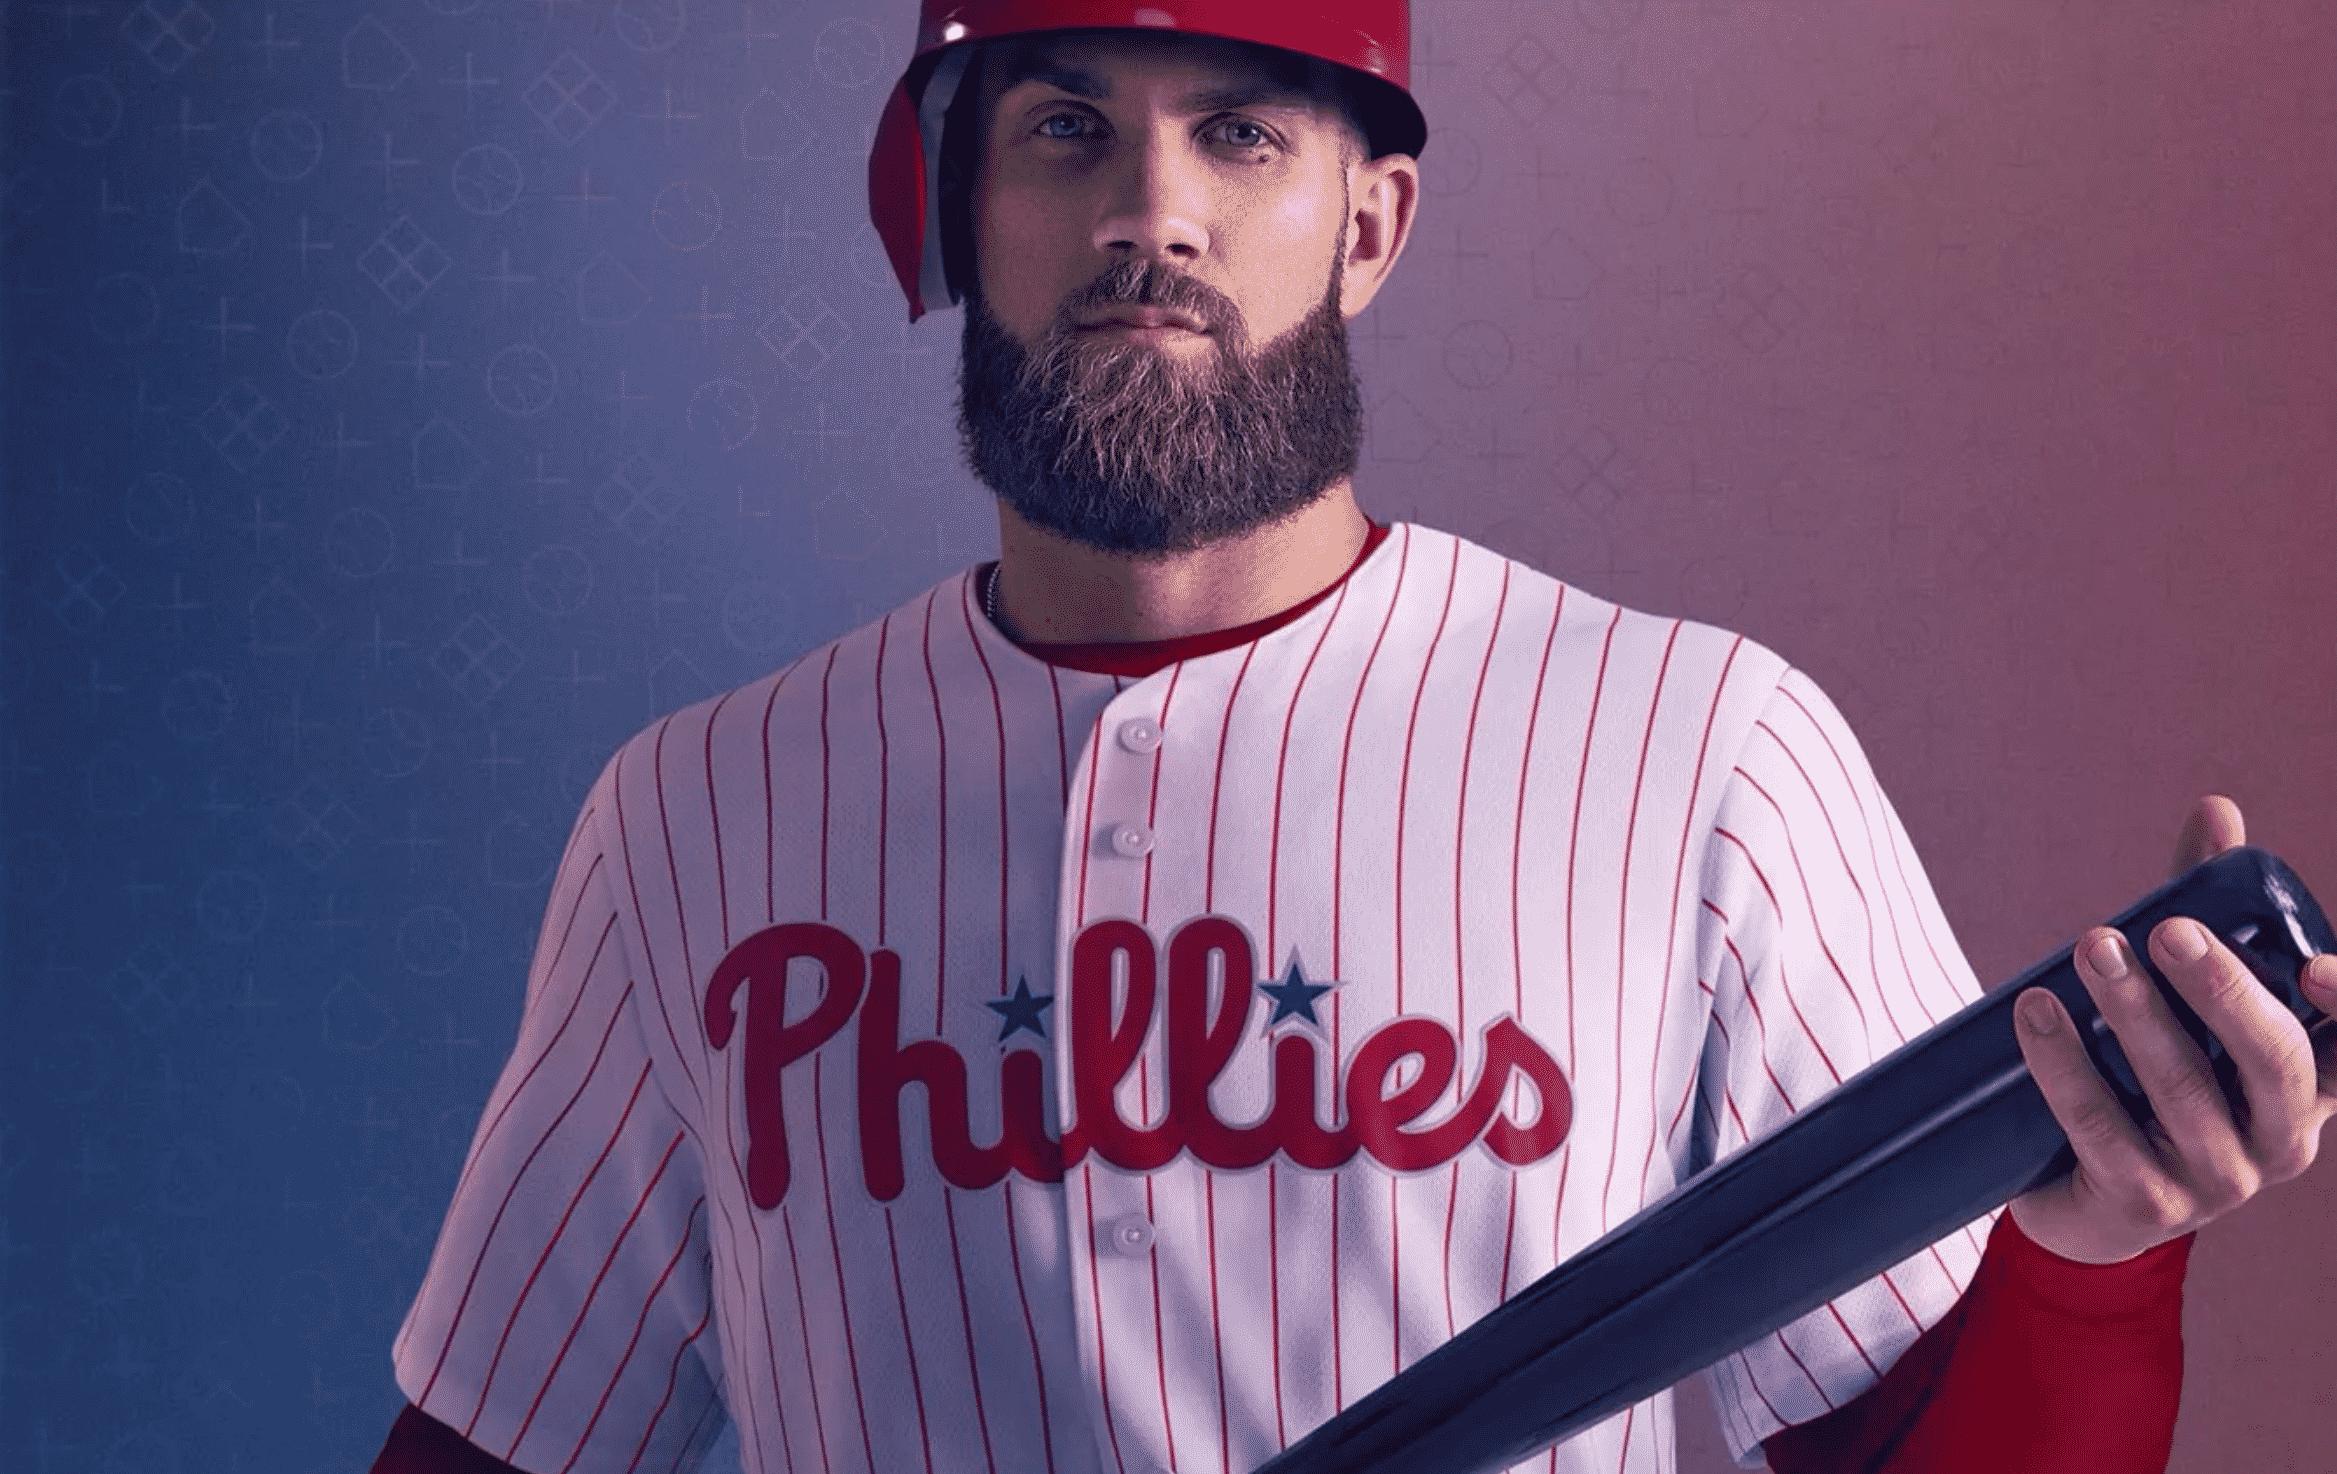 Mlb The Show 19 Bryce Harper Cover Unveiled First Look At